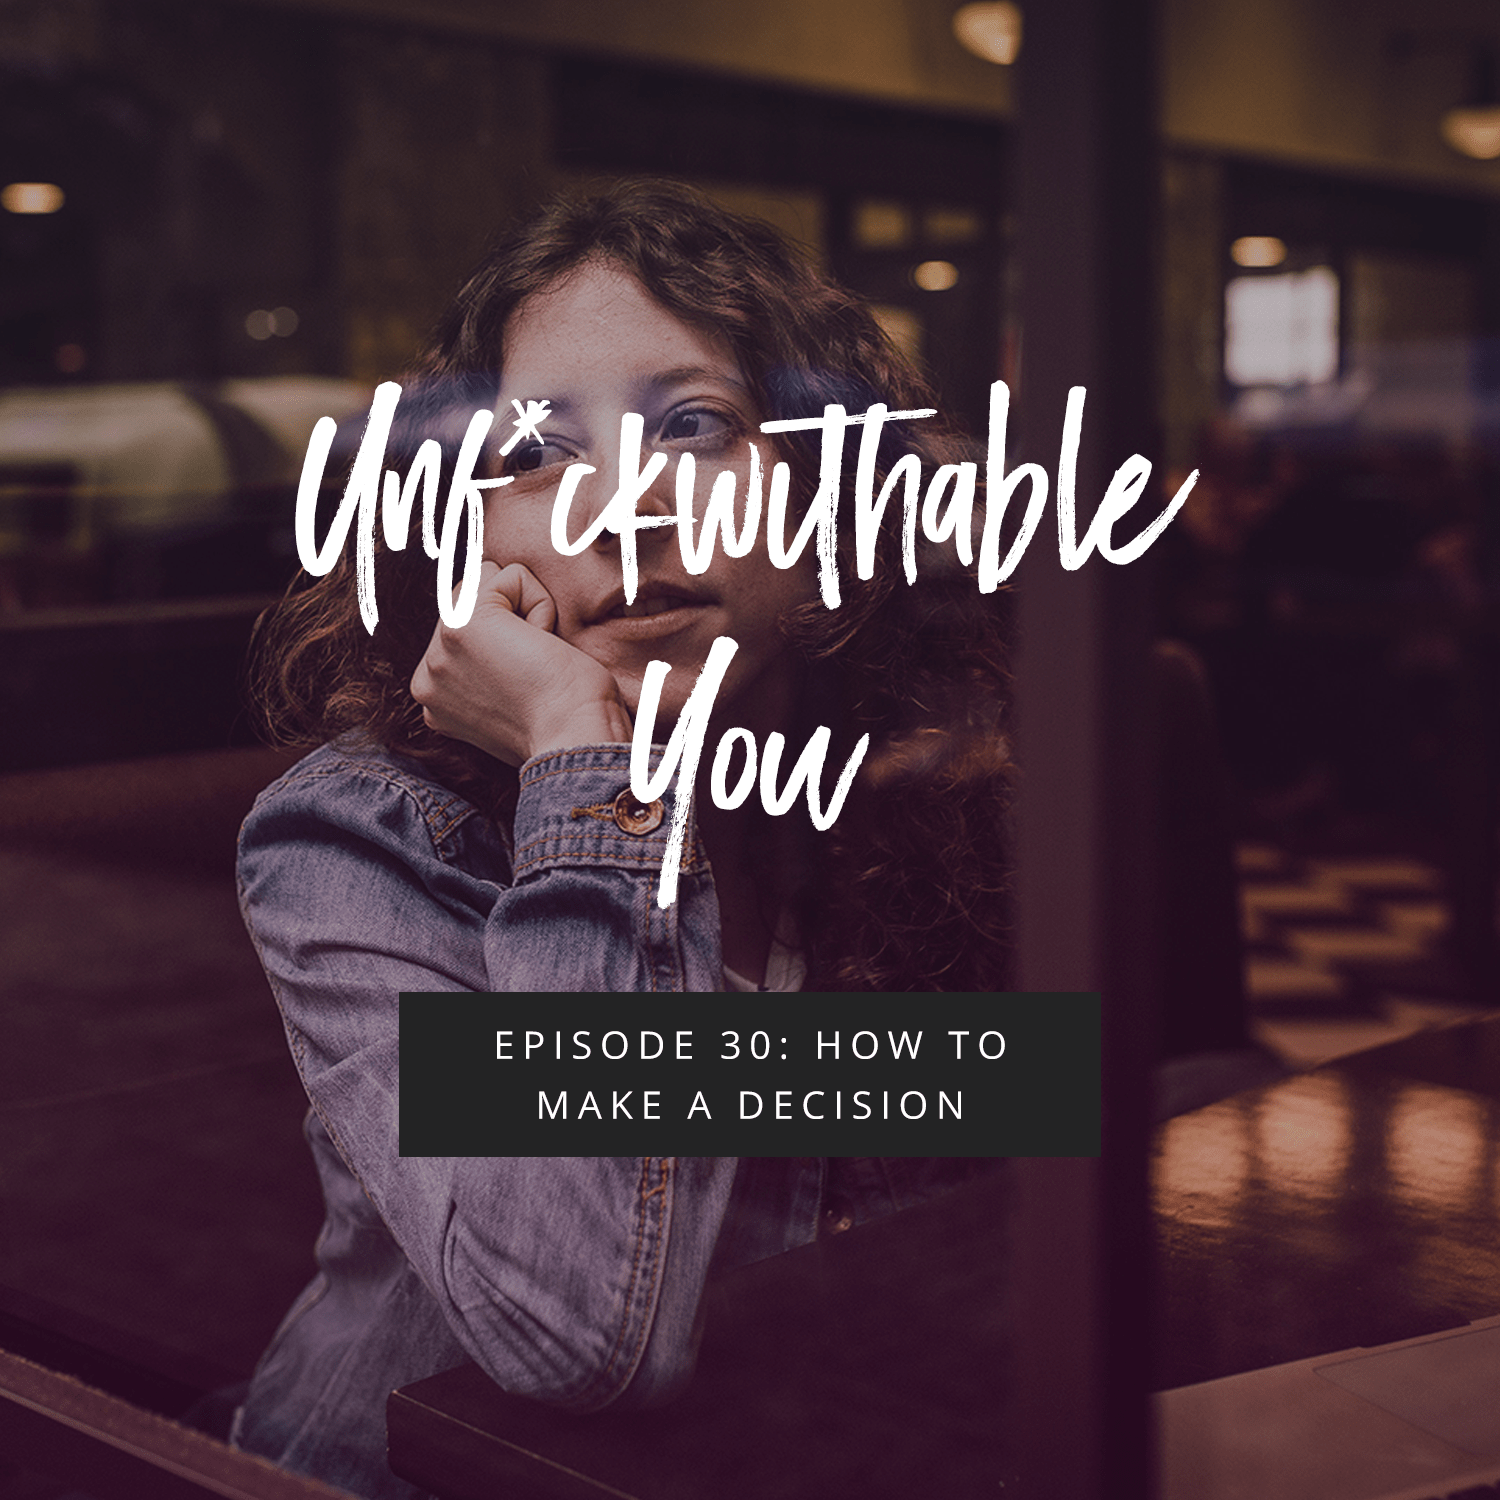 Unf*ckwithable You Episode 30: How To Make A Decision